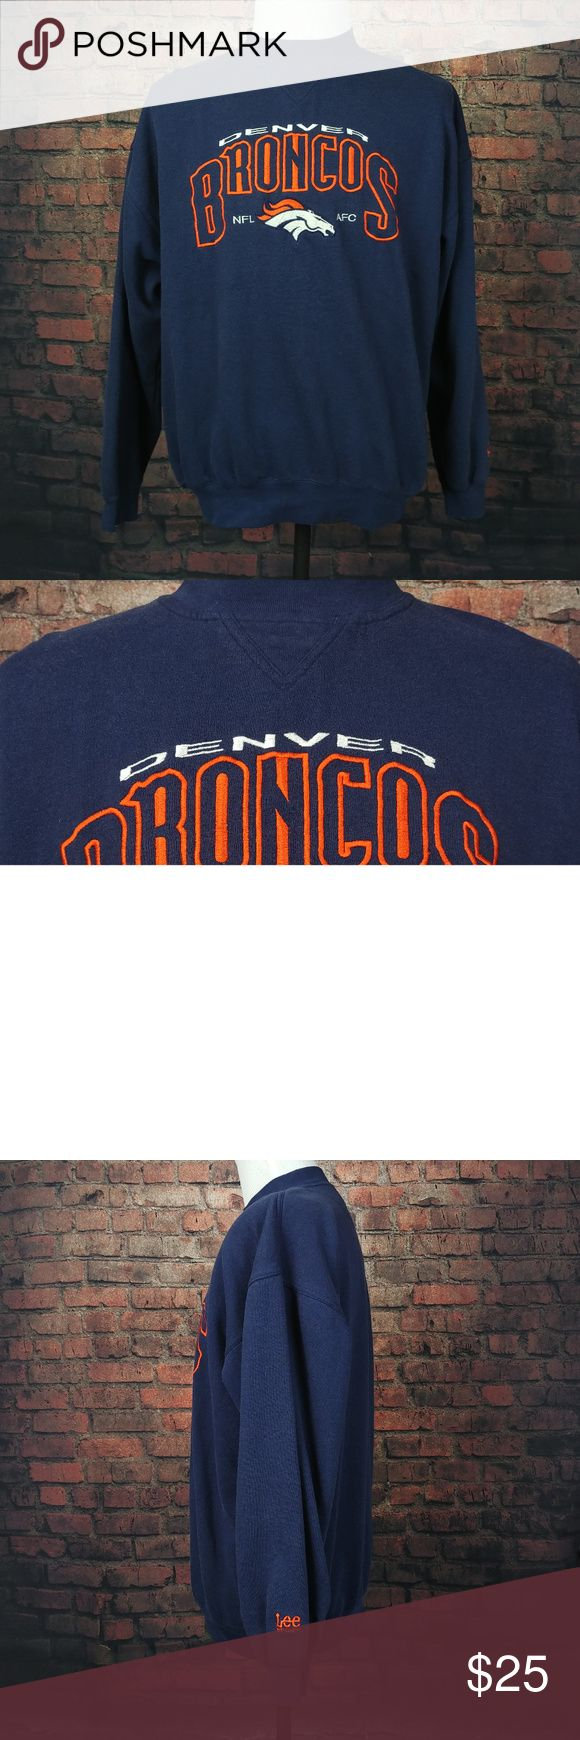 "VINTAGE Lee Sport Denver Broncos Sweatshirt Mens VINTAGE Lee Sport Denver Broncos Sweatshirt Mens Extra Large Pullover Crewneck  Very Good Condition! (See Photos).  Item Dimensions (Approximately):      26"" - Pit to Pit     28.5"" - Item Length (Front Side Neckline to Bottom)  Questions? Please ask, I try to respond immediately!   I ship daily to get you your item ASAP!   Just a common guy bringing you great deals, superb customer service is my goal.  -Cooper @ CoopsThrifts Lee Sport Sweaters…"